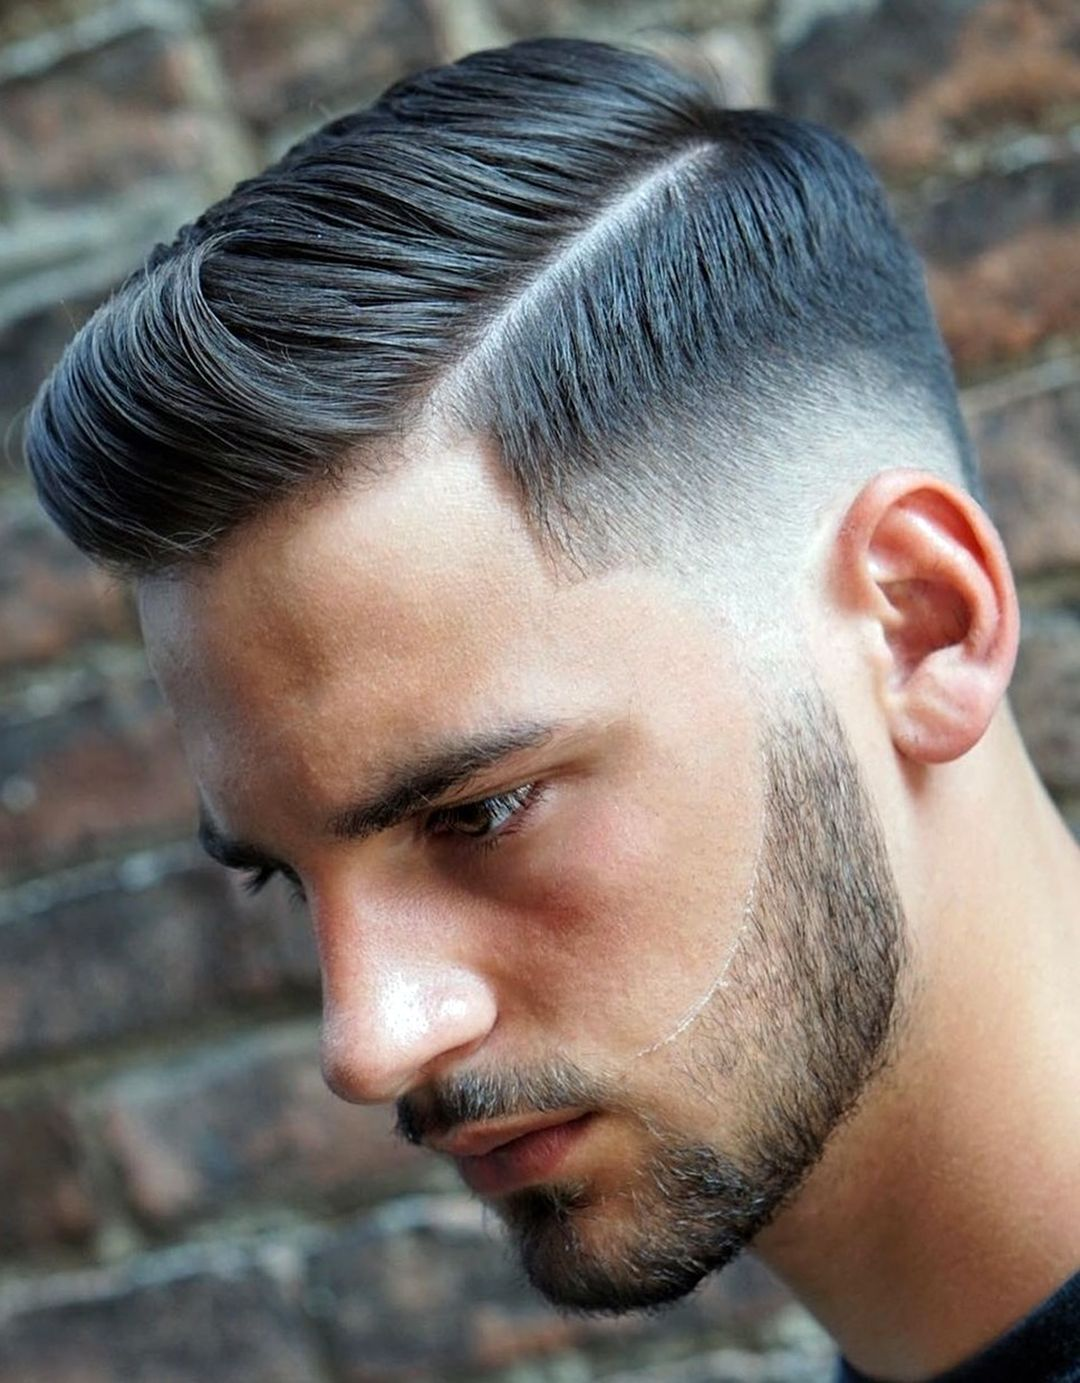 Look Fresh With 9 Men S Haircut Ideas That Will Become Hair Style Trends In 2020 Fashions Nowadays In 2020 Men Haircut Styles Side Part Haircut Haircut Names For Men